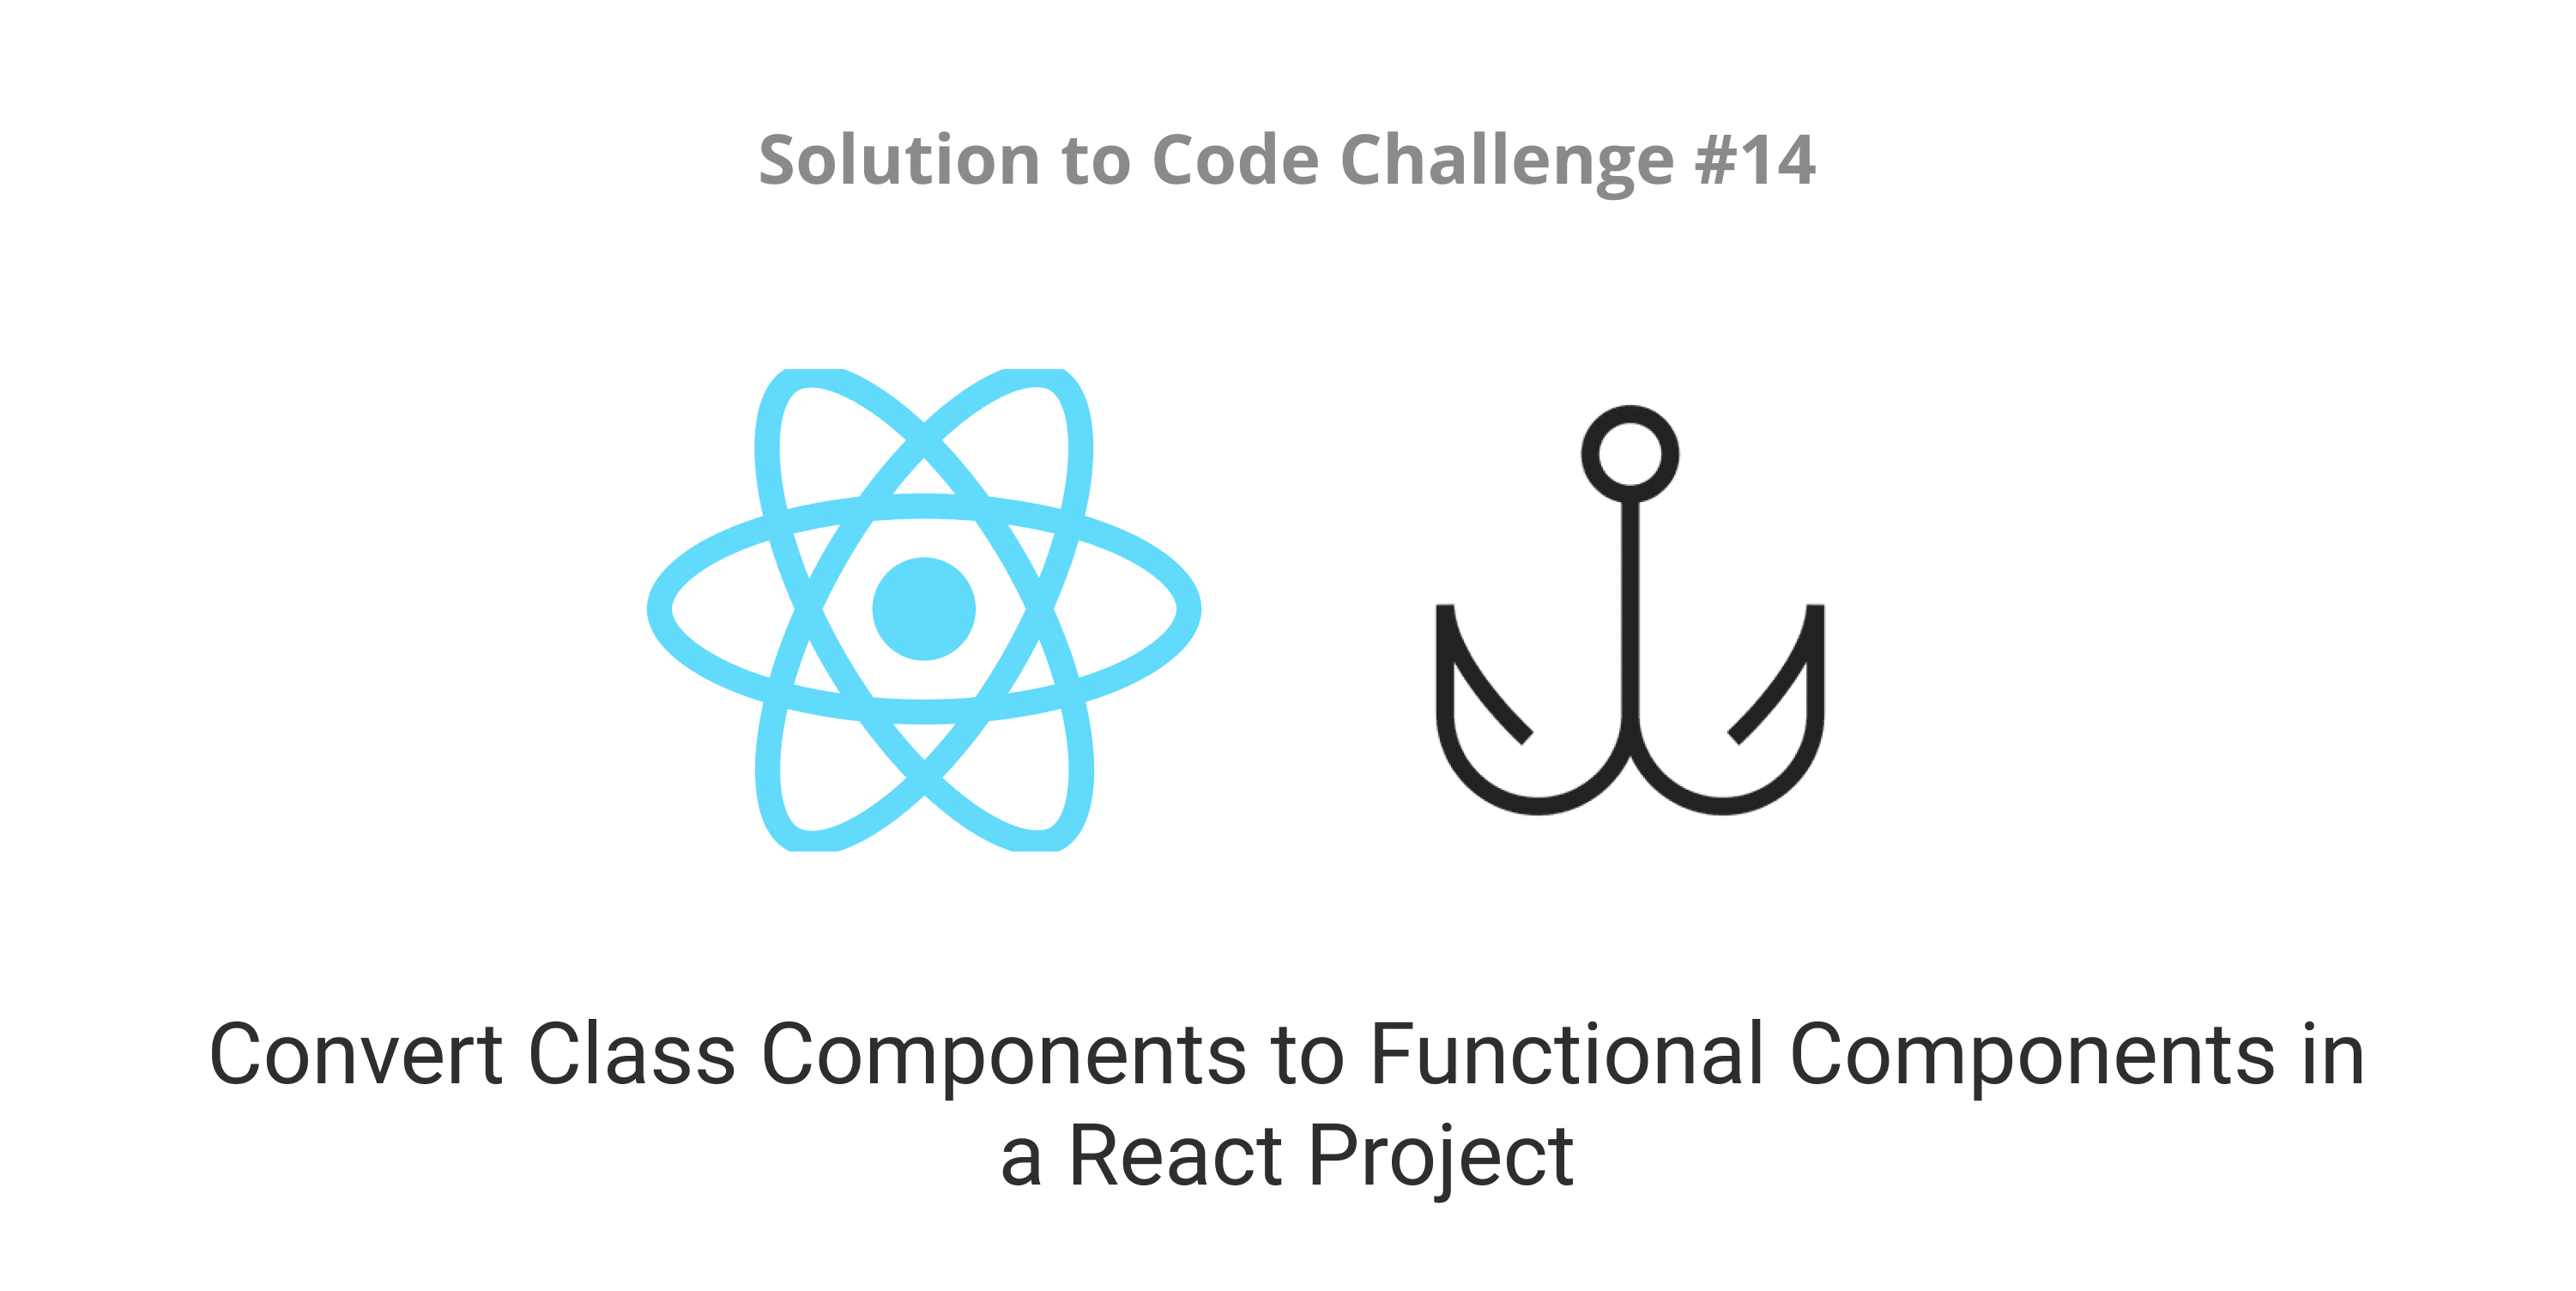 Convert Class Components to Functional Components in a React